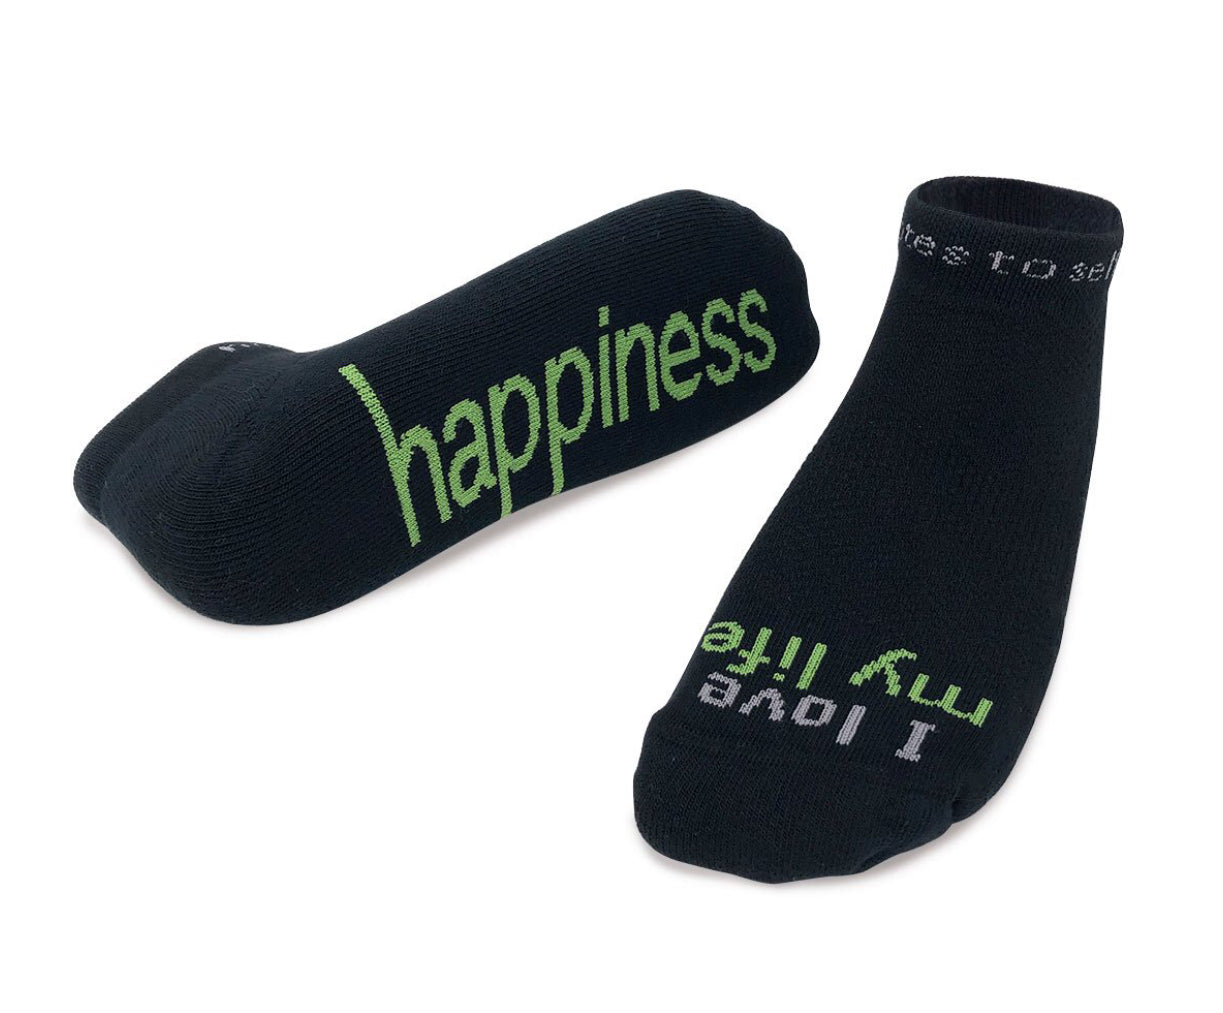 "Notes to Self Socks ""I Love My Life - Happiness"" Black - Multiple Sizes - Novelty Socks, Mens, Womens, Kids"